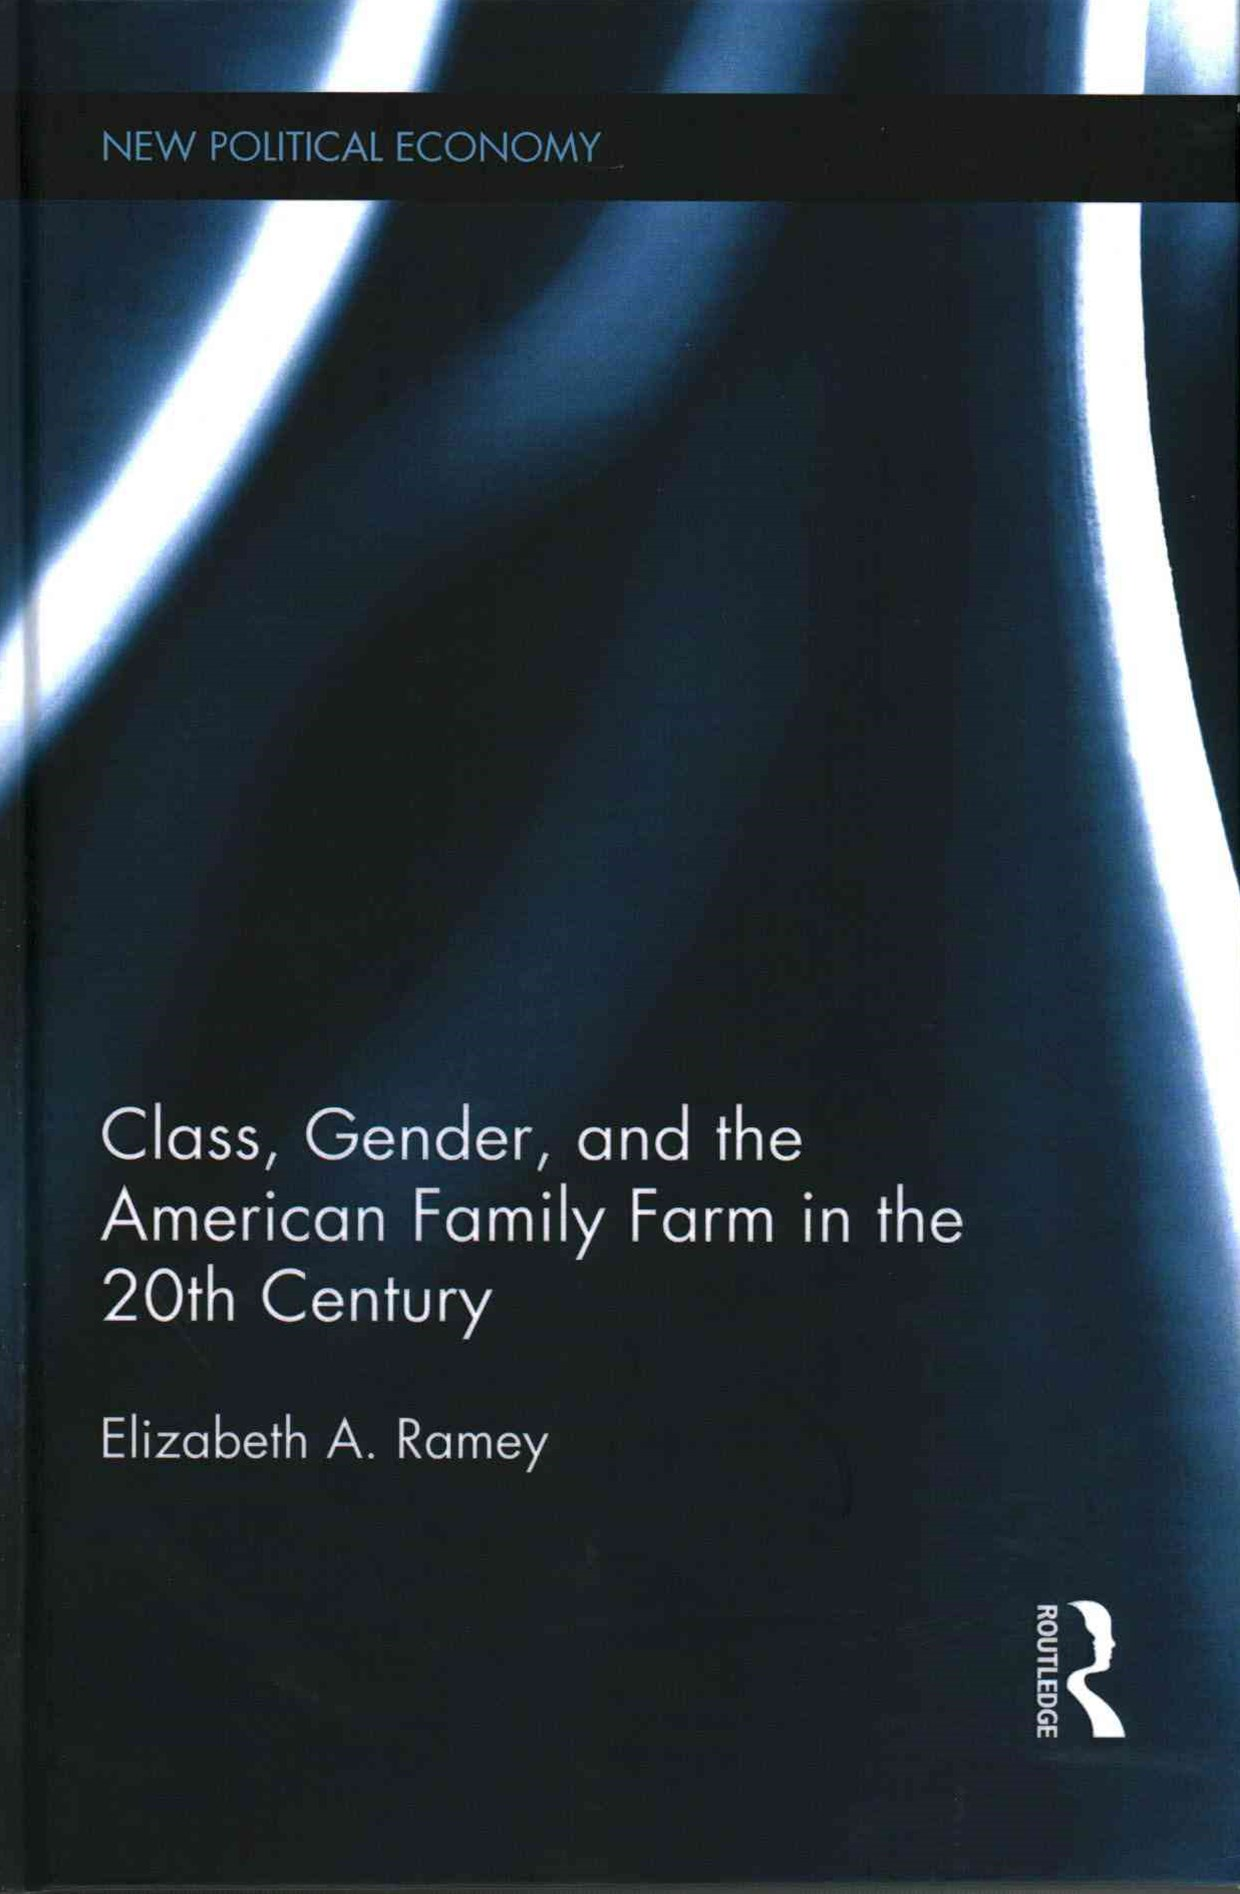 Class, Gender and the American Family Farm in the 20th Century